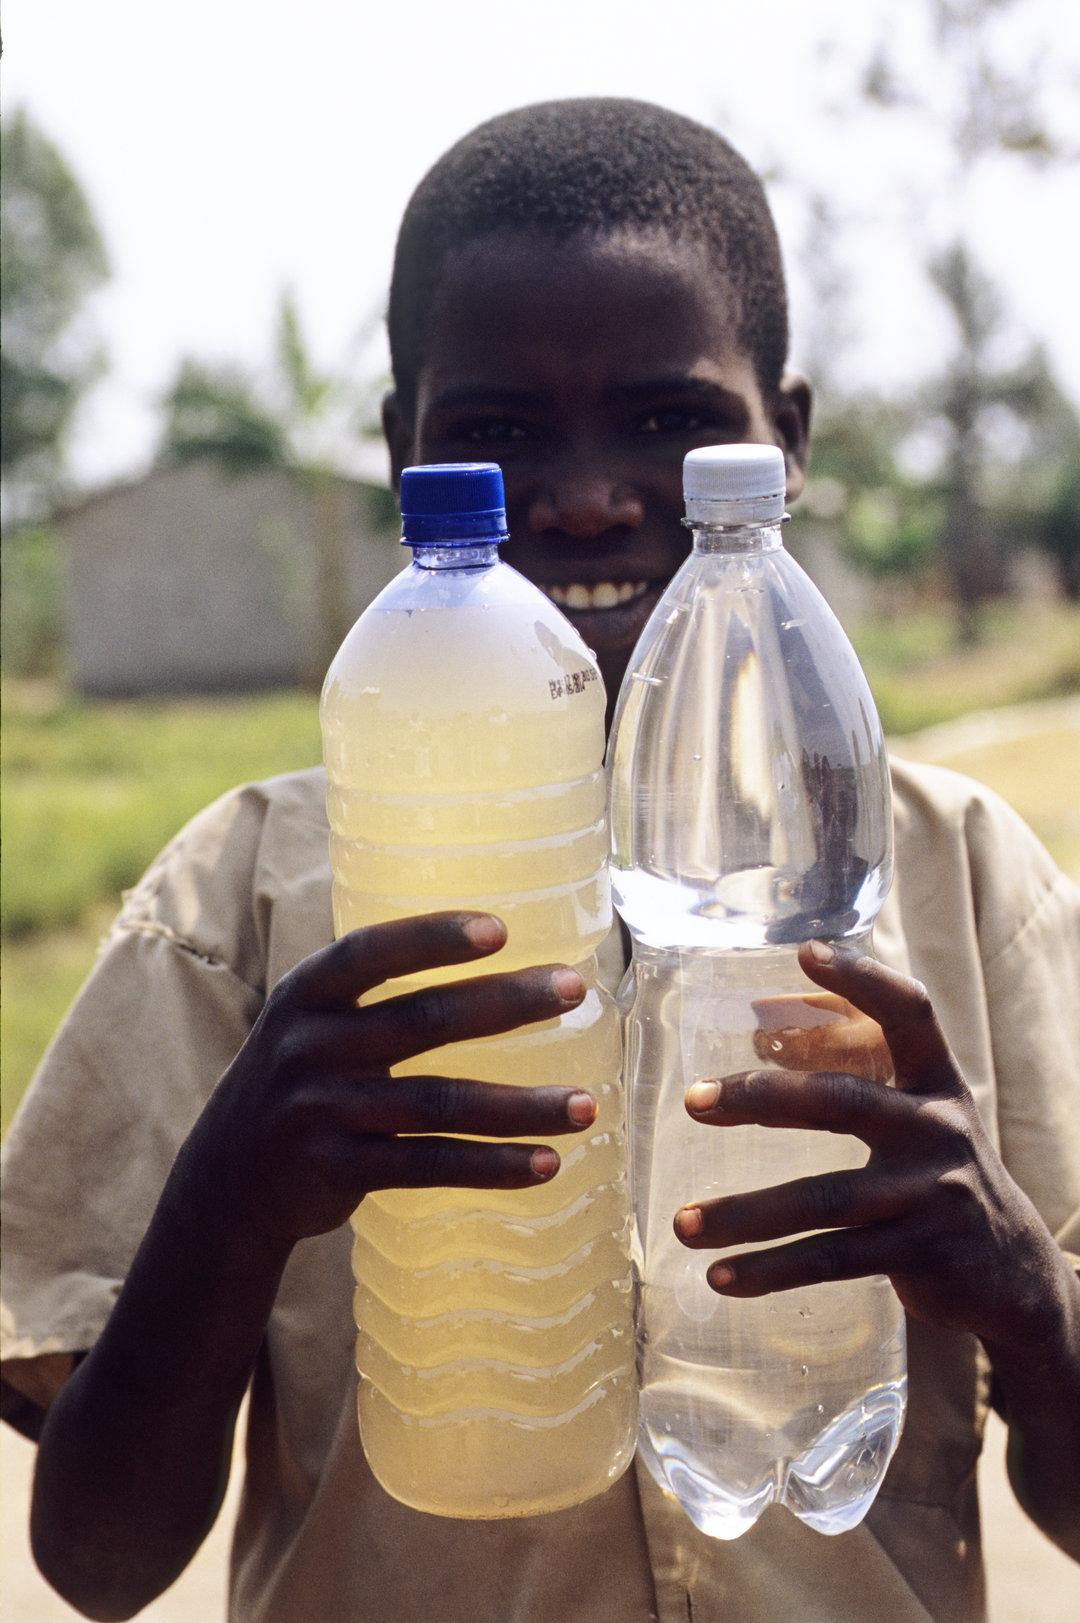 Boy with two bottles in his hands, one with murky water, one with clear water.